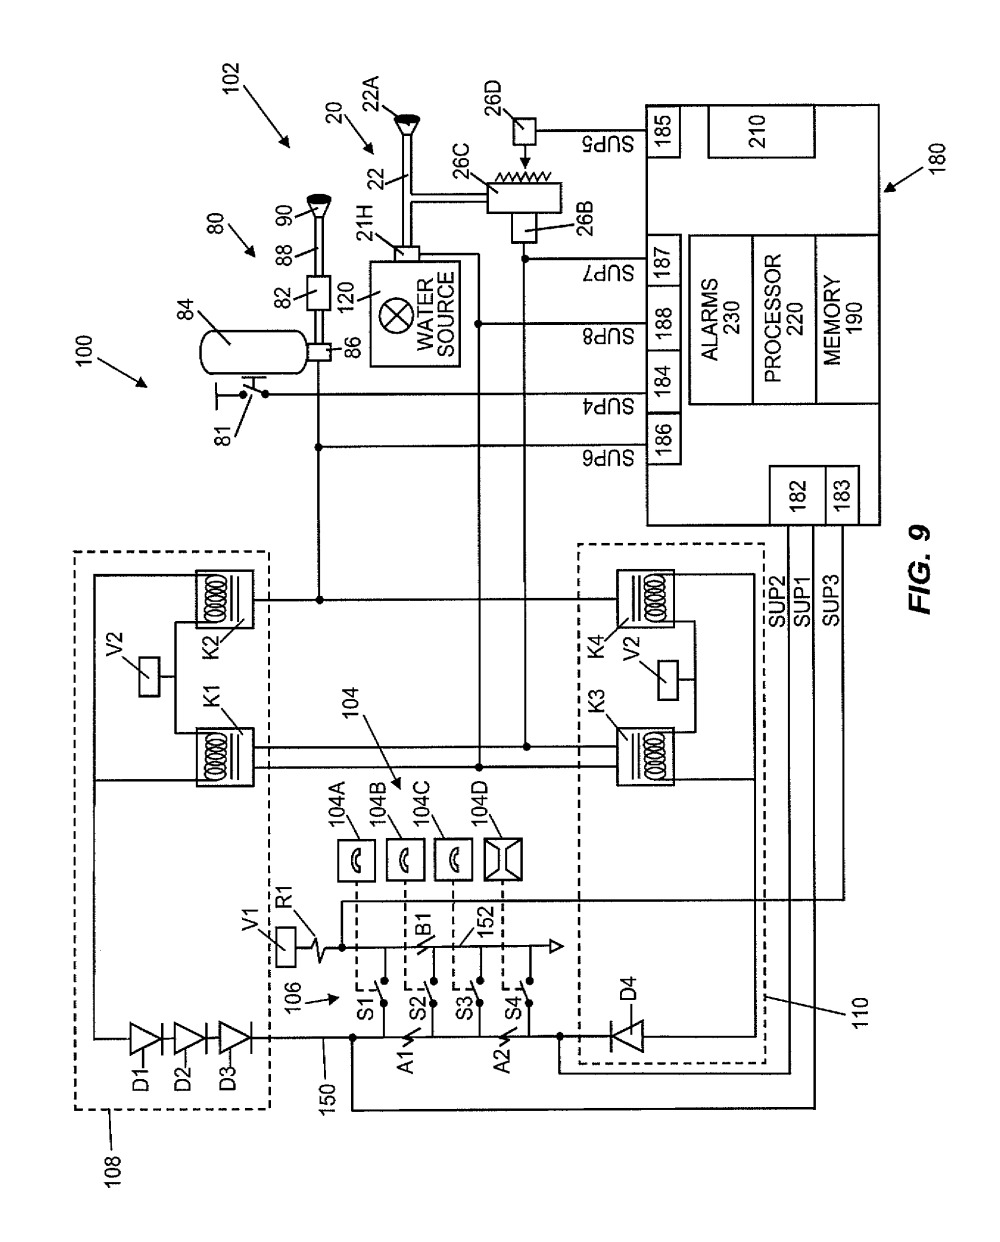 medium resolution of  us08378834 20130219 d00010 patent us8378834 kitchen hood assembly with fire suppression at cita asia ansul system wiring diagram